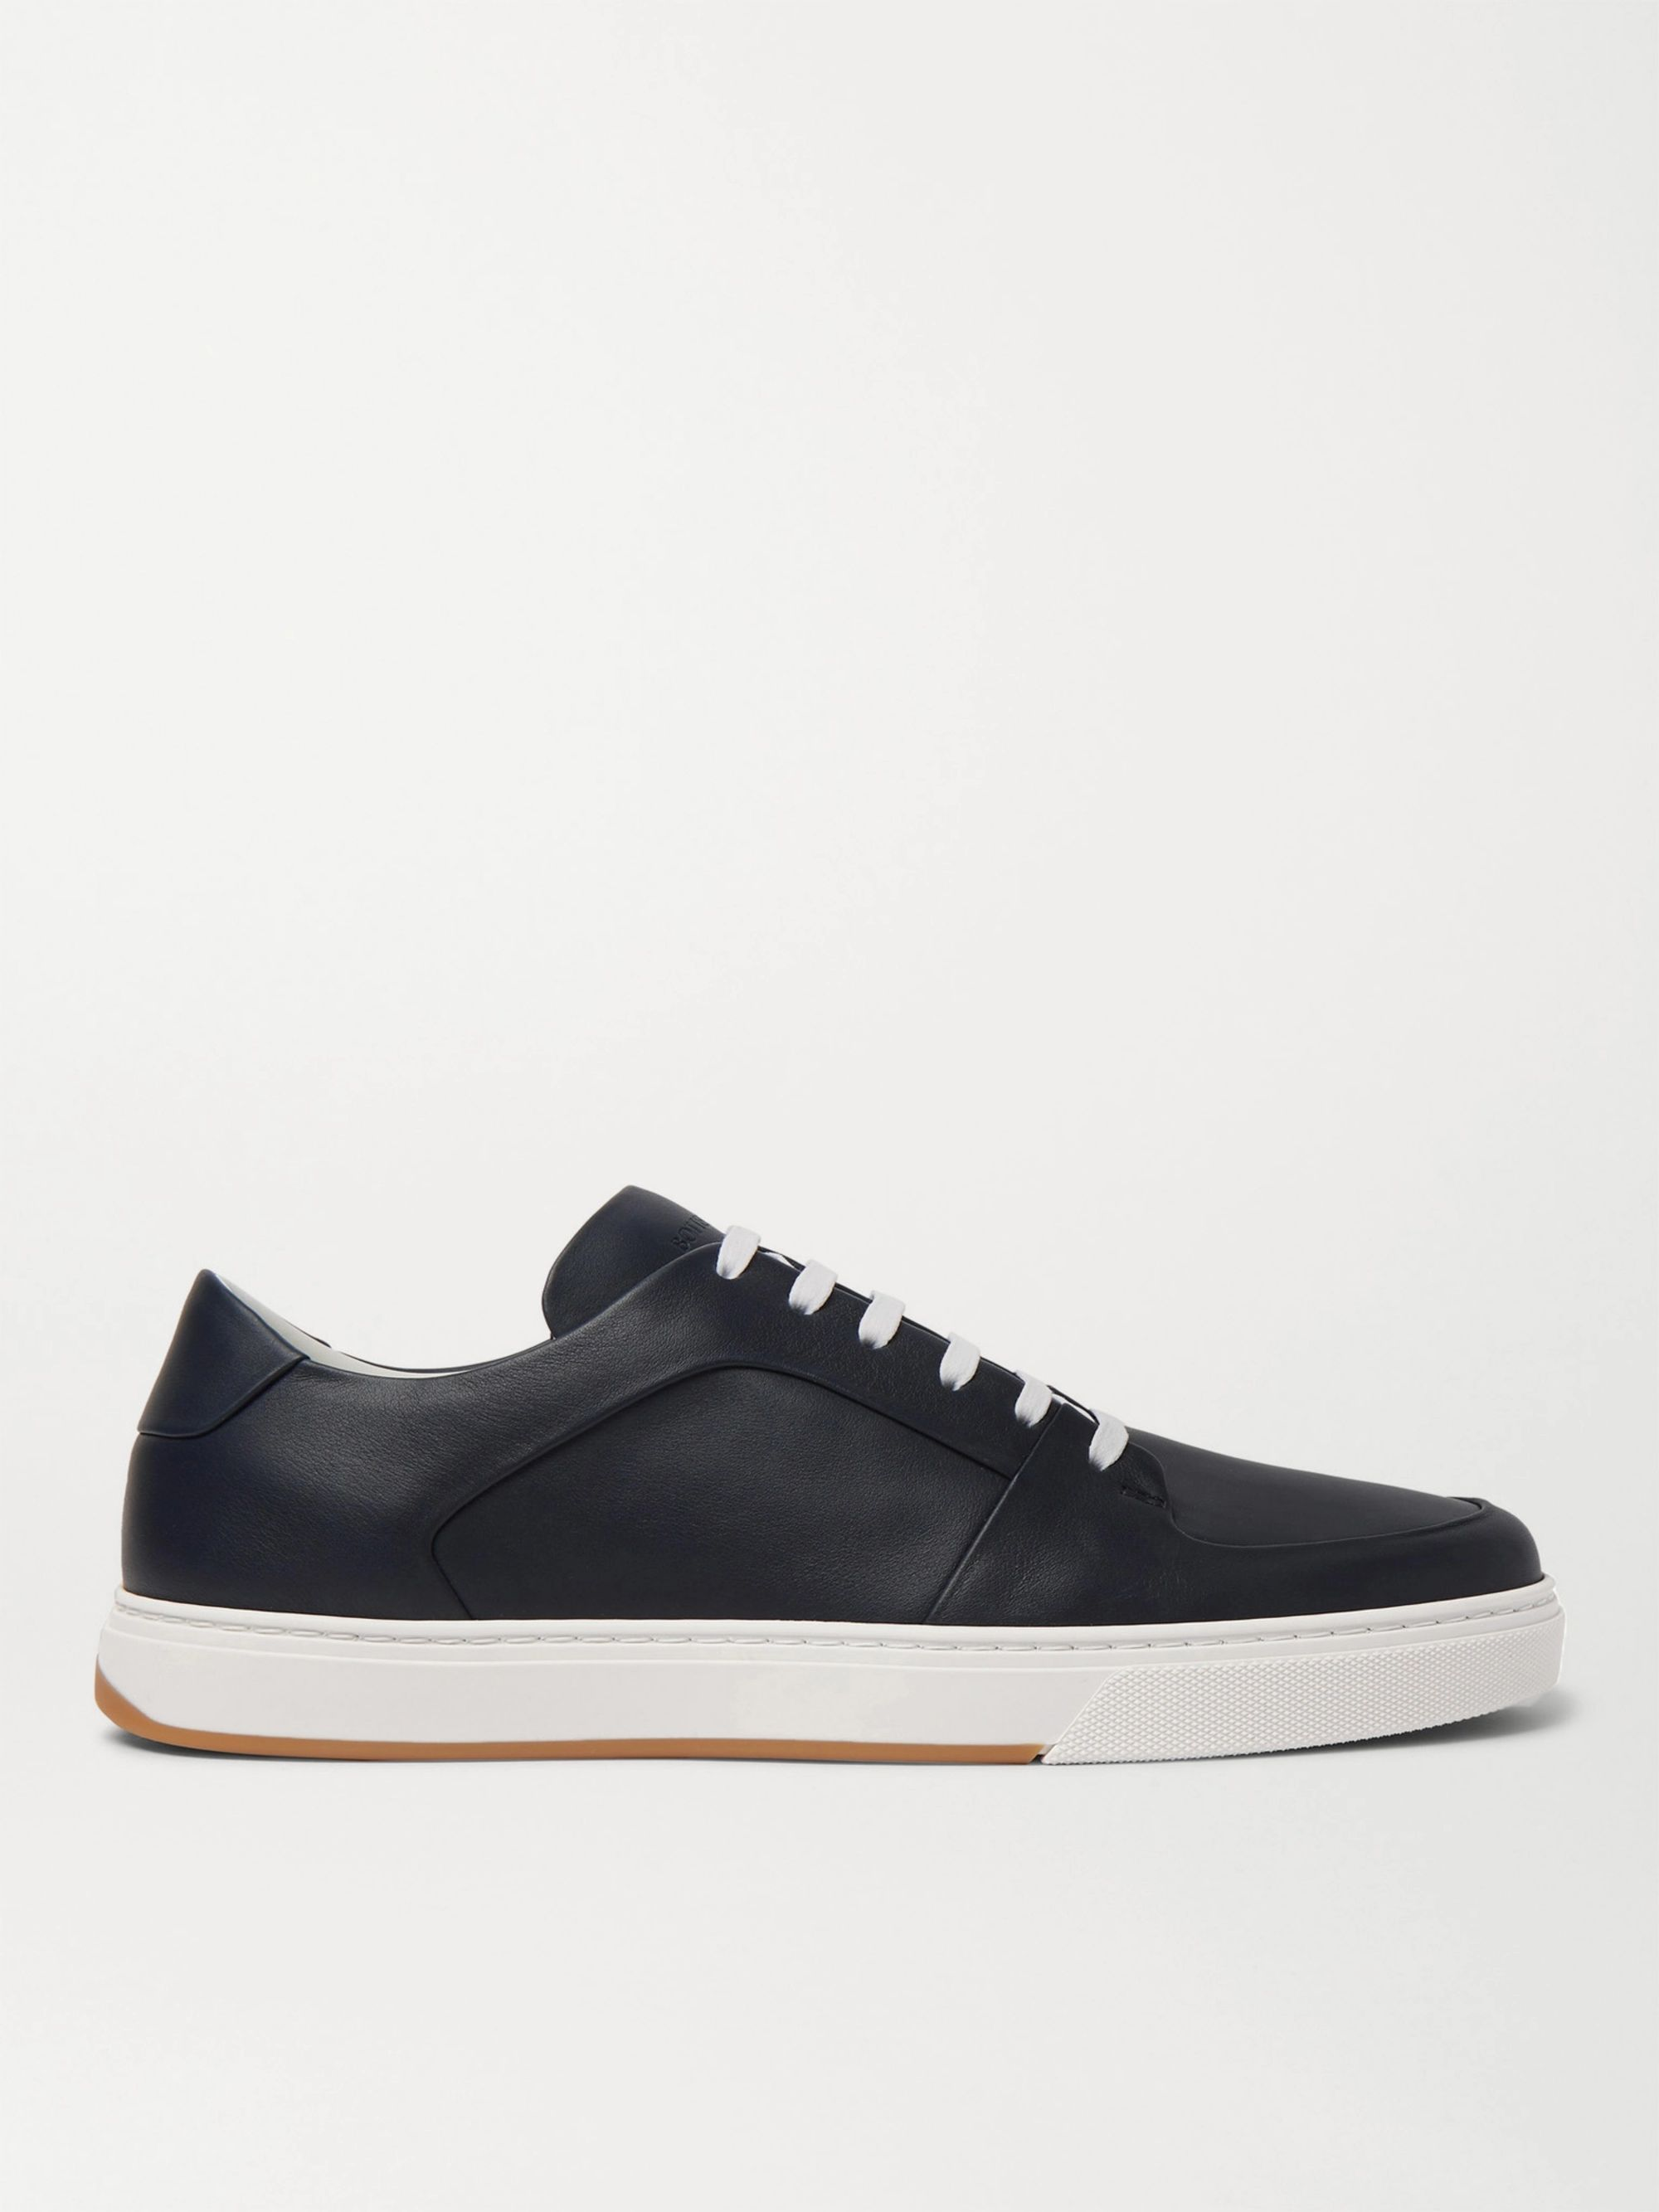 Bottega Veneta Leather Sneakers